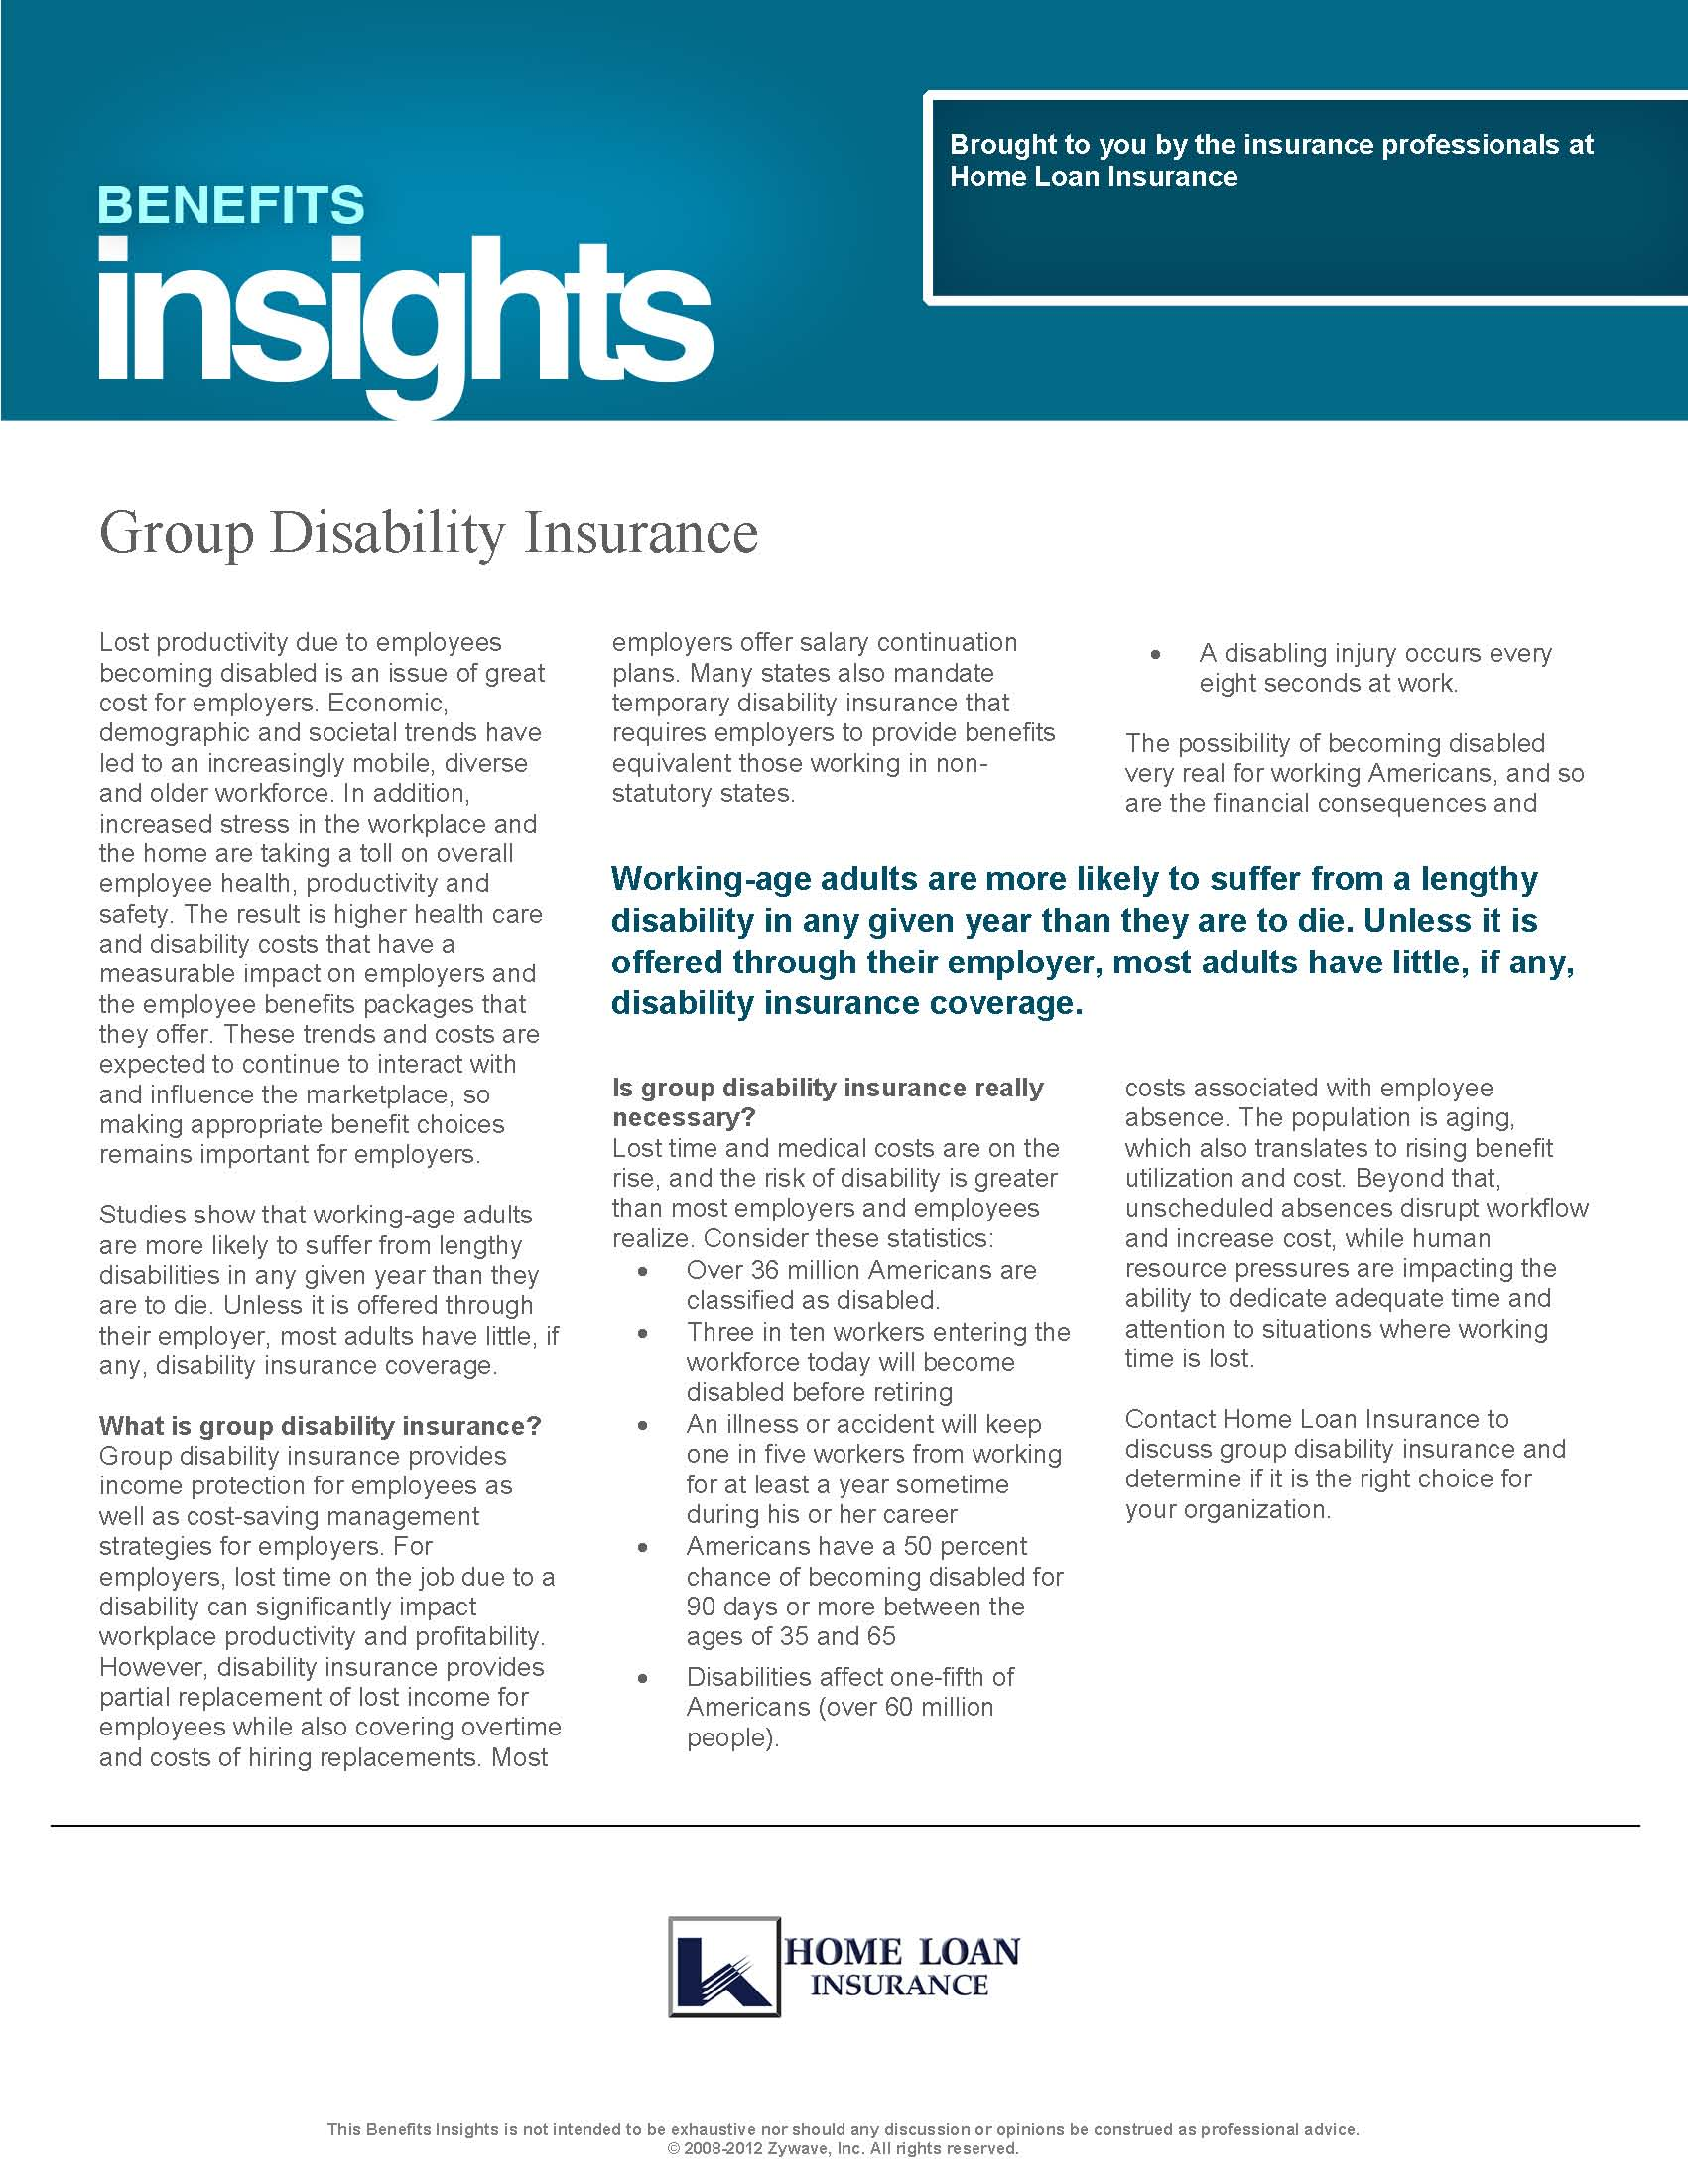 Group Disability Insurance pdf